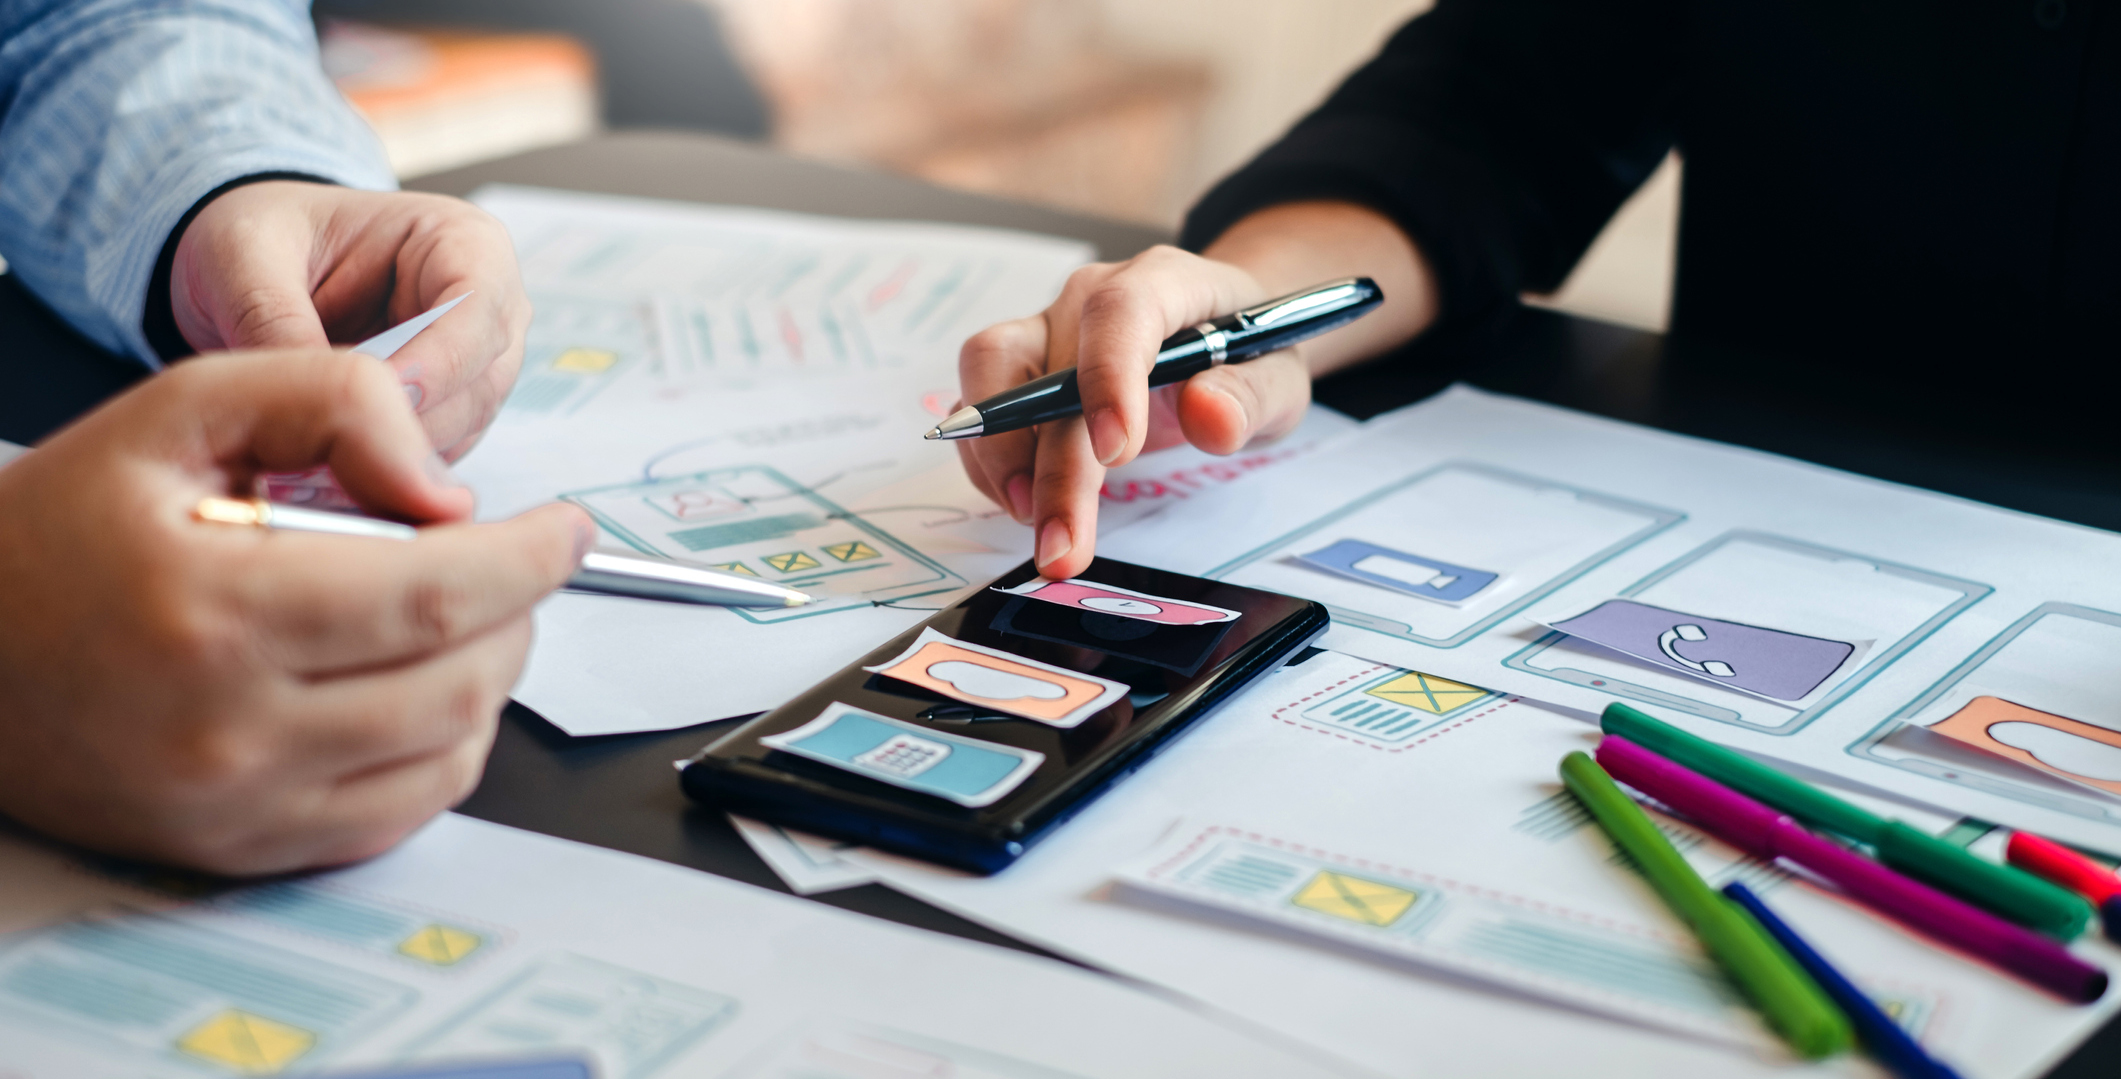 optimize your website's user experience